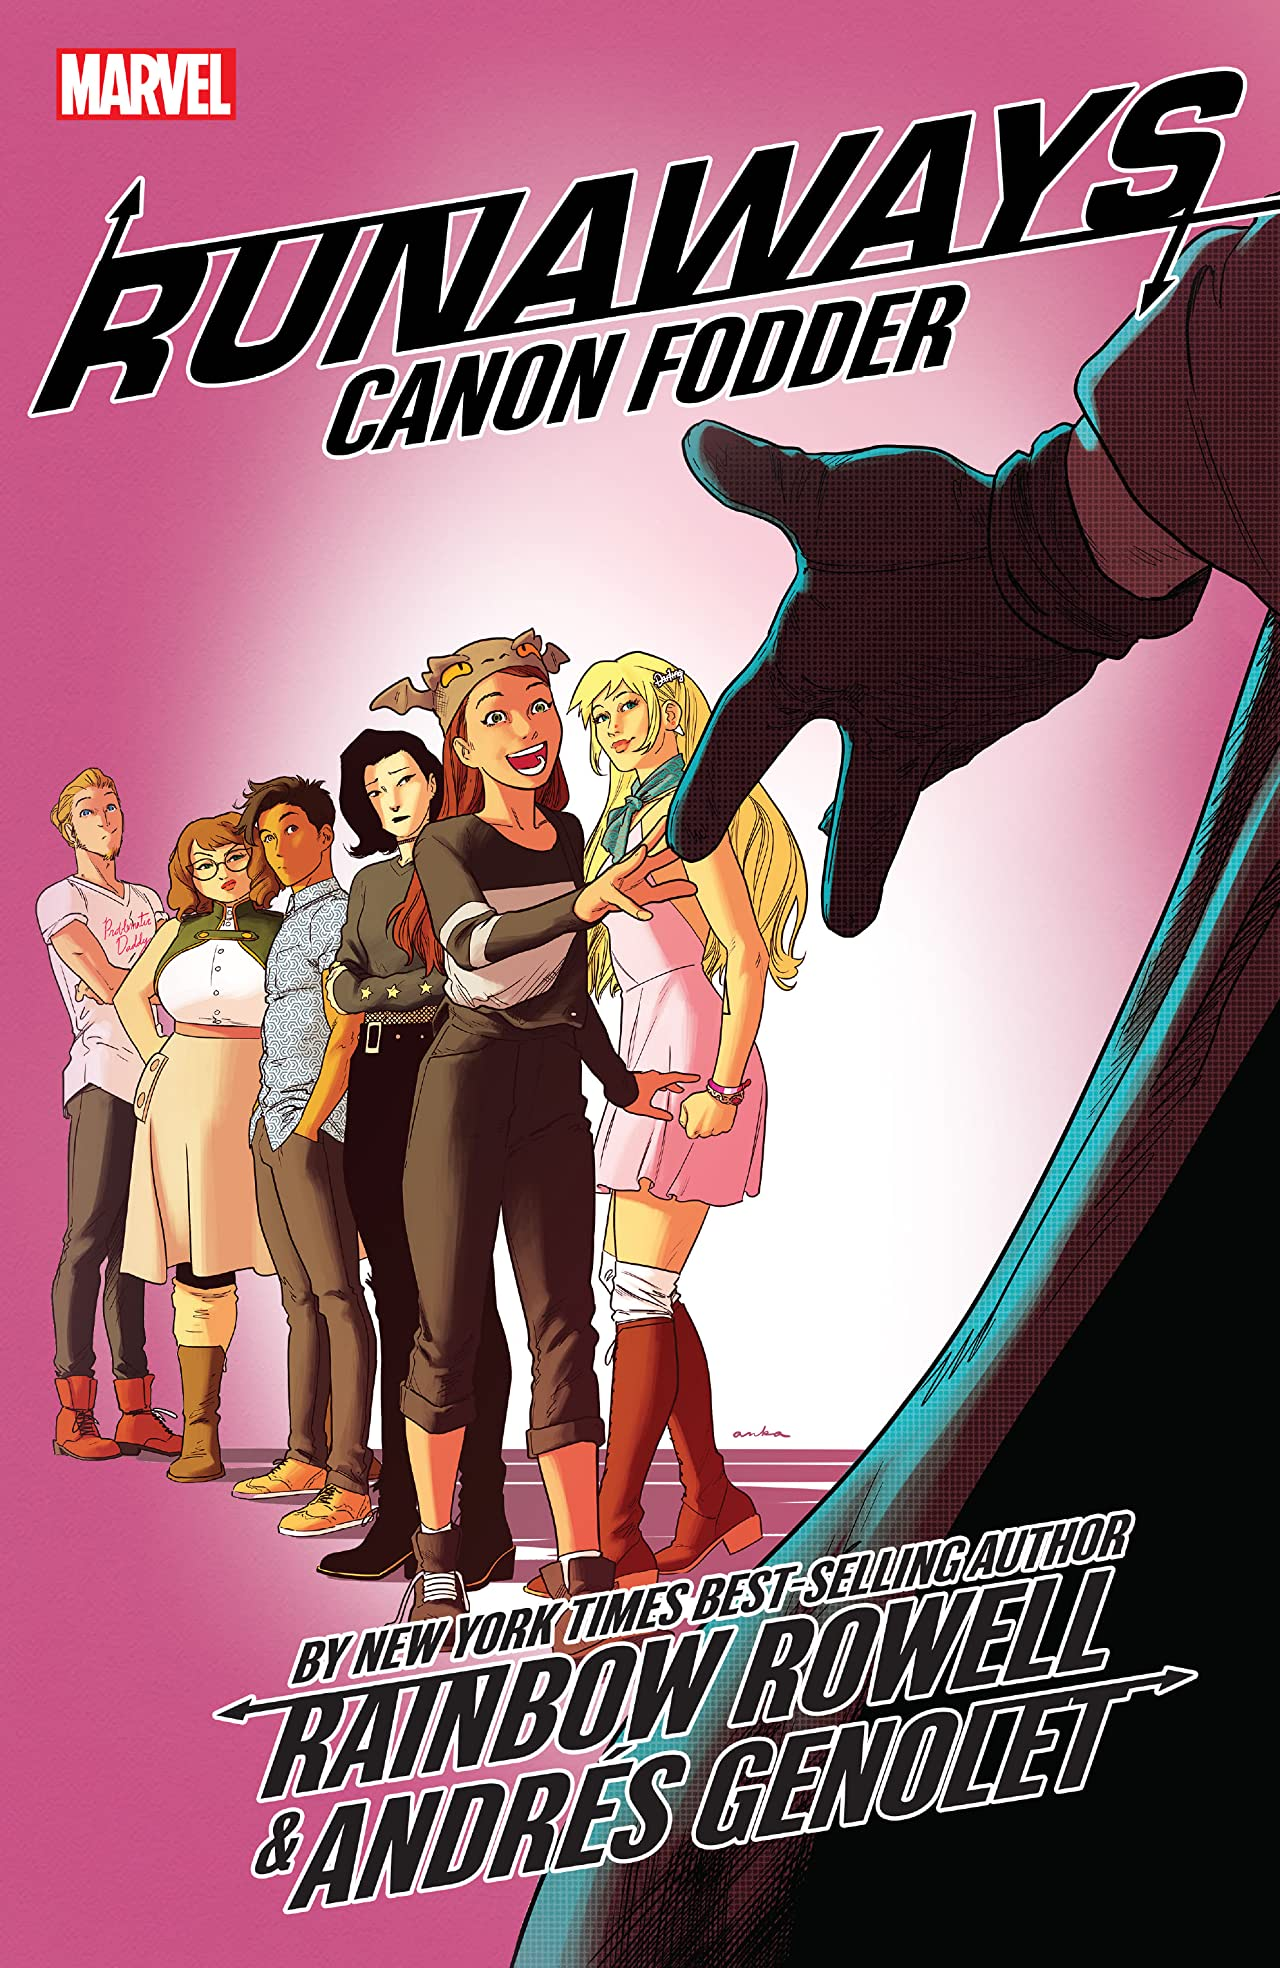 Runaways by Rainbow Rowell Vol. 5: Cannon Fodder